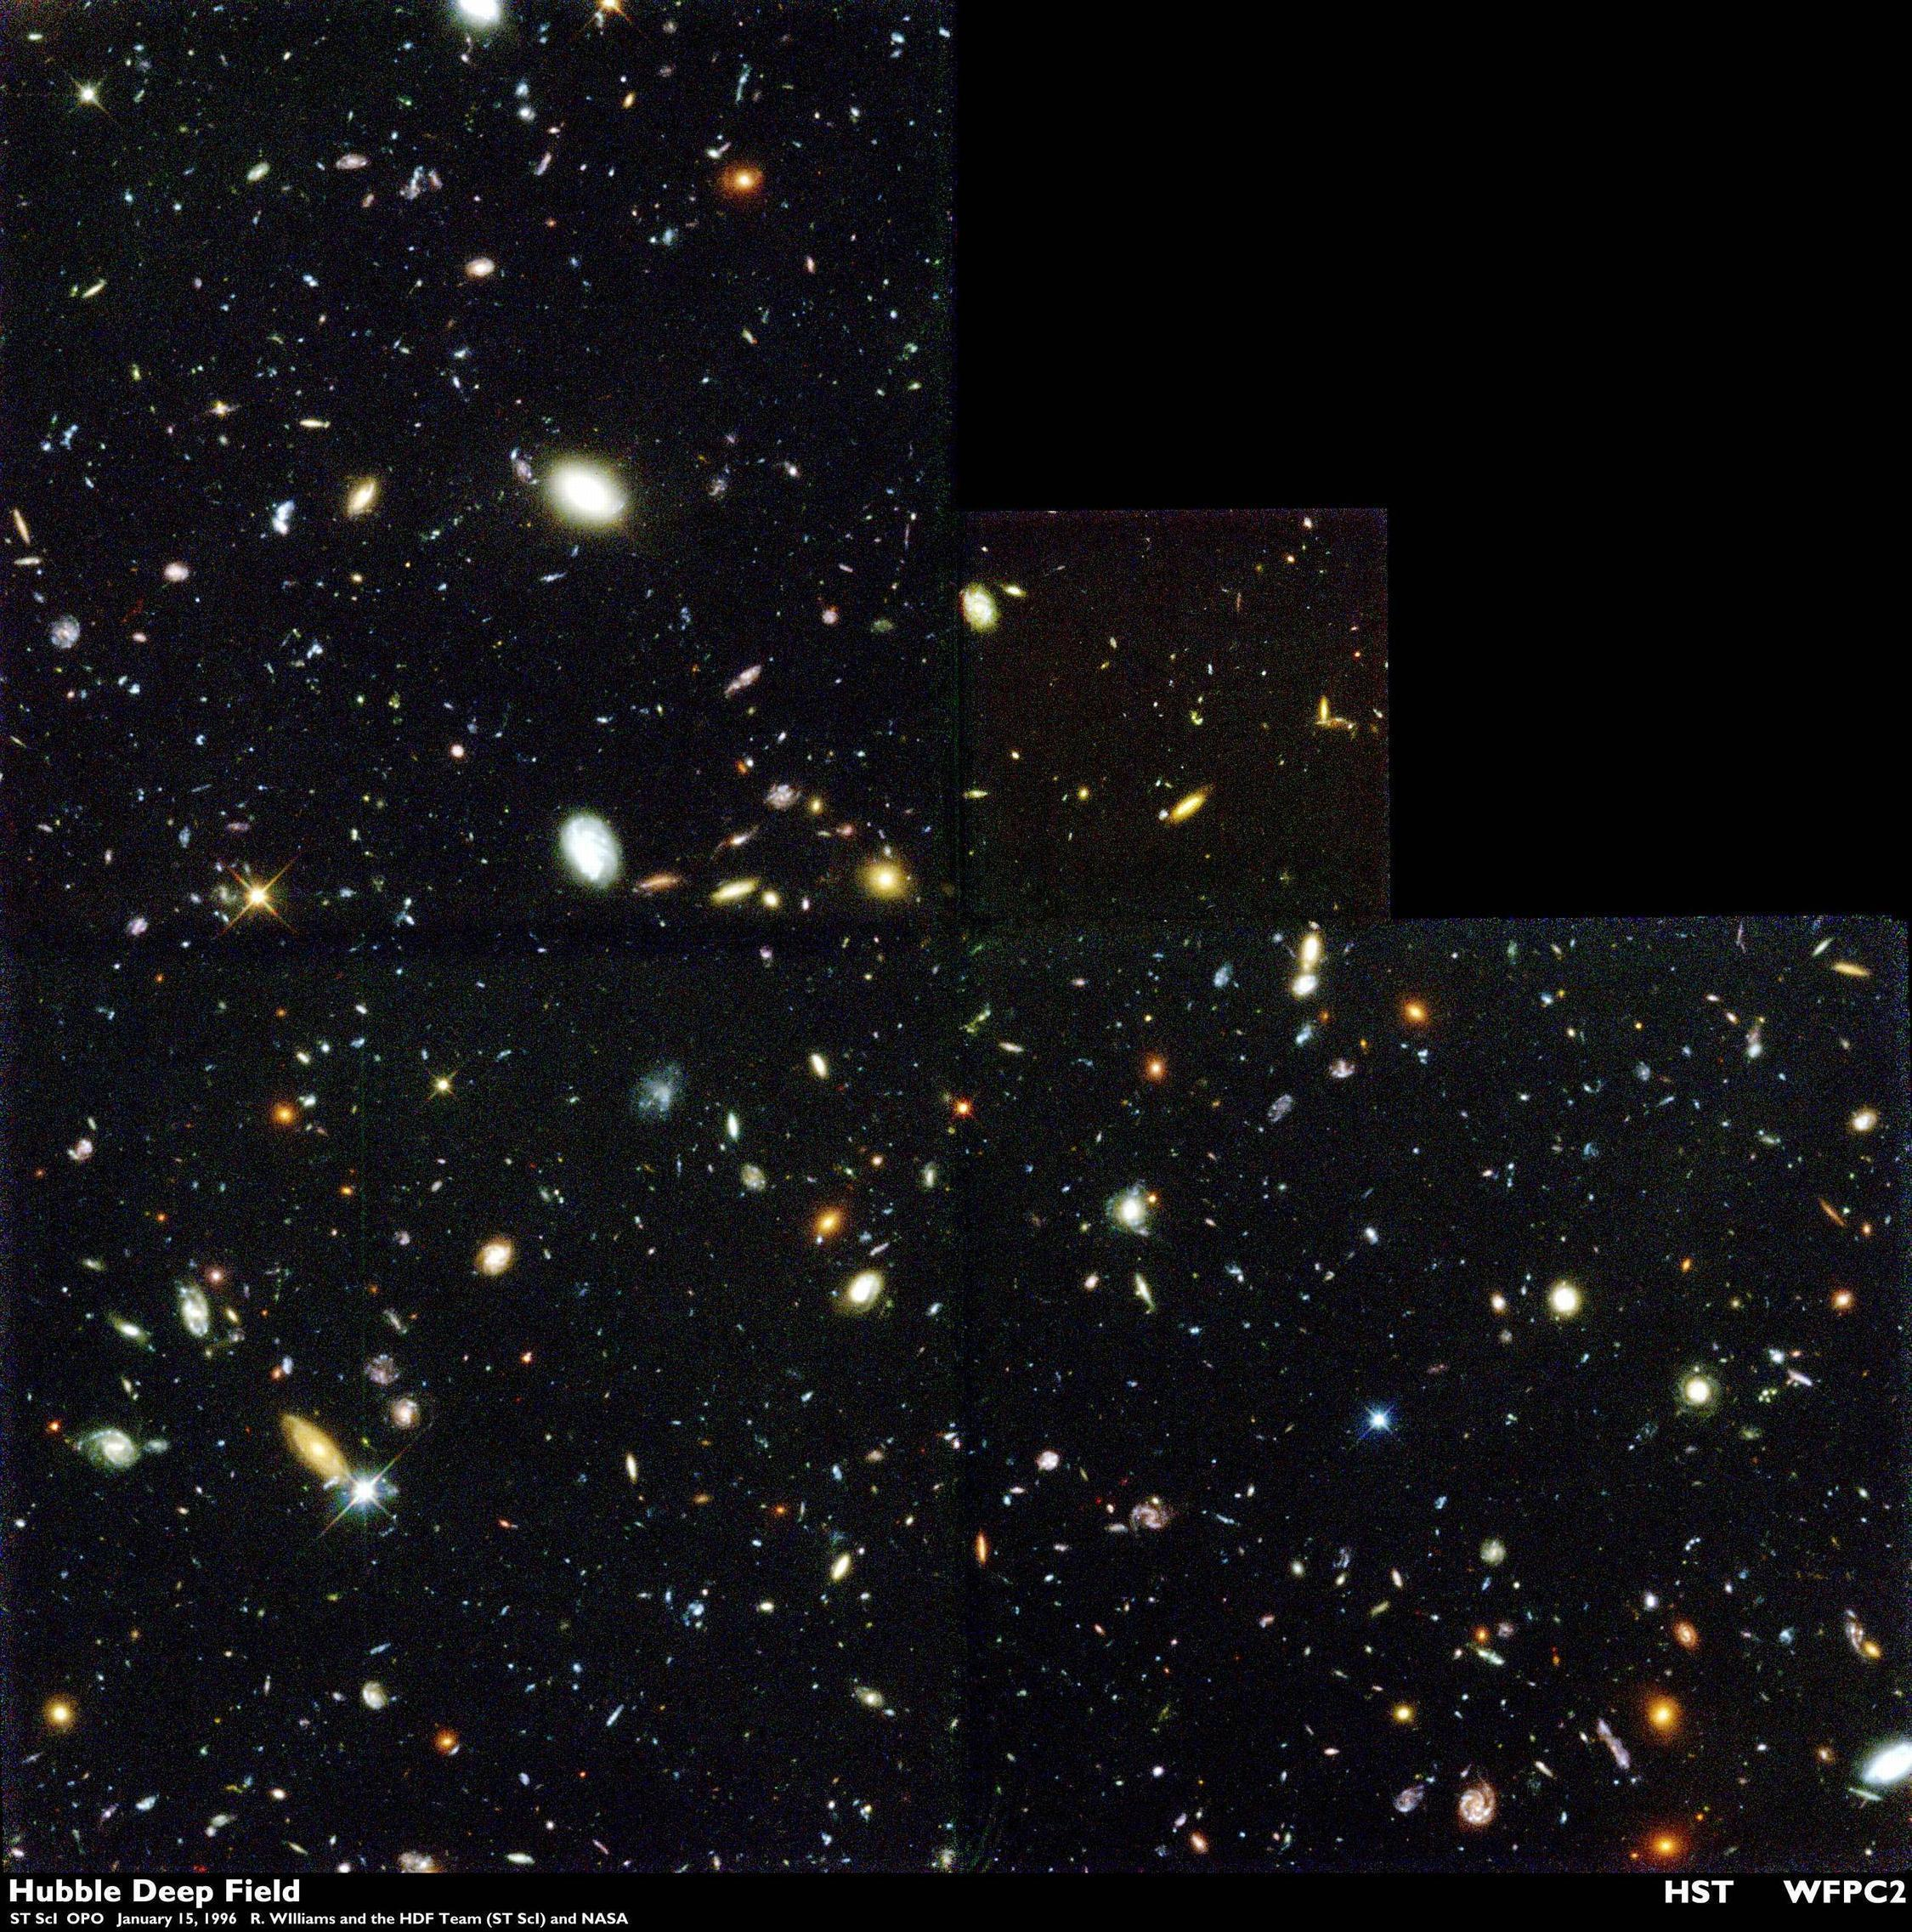 hubble deep field hd wallpaper - photo #20